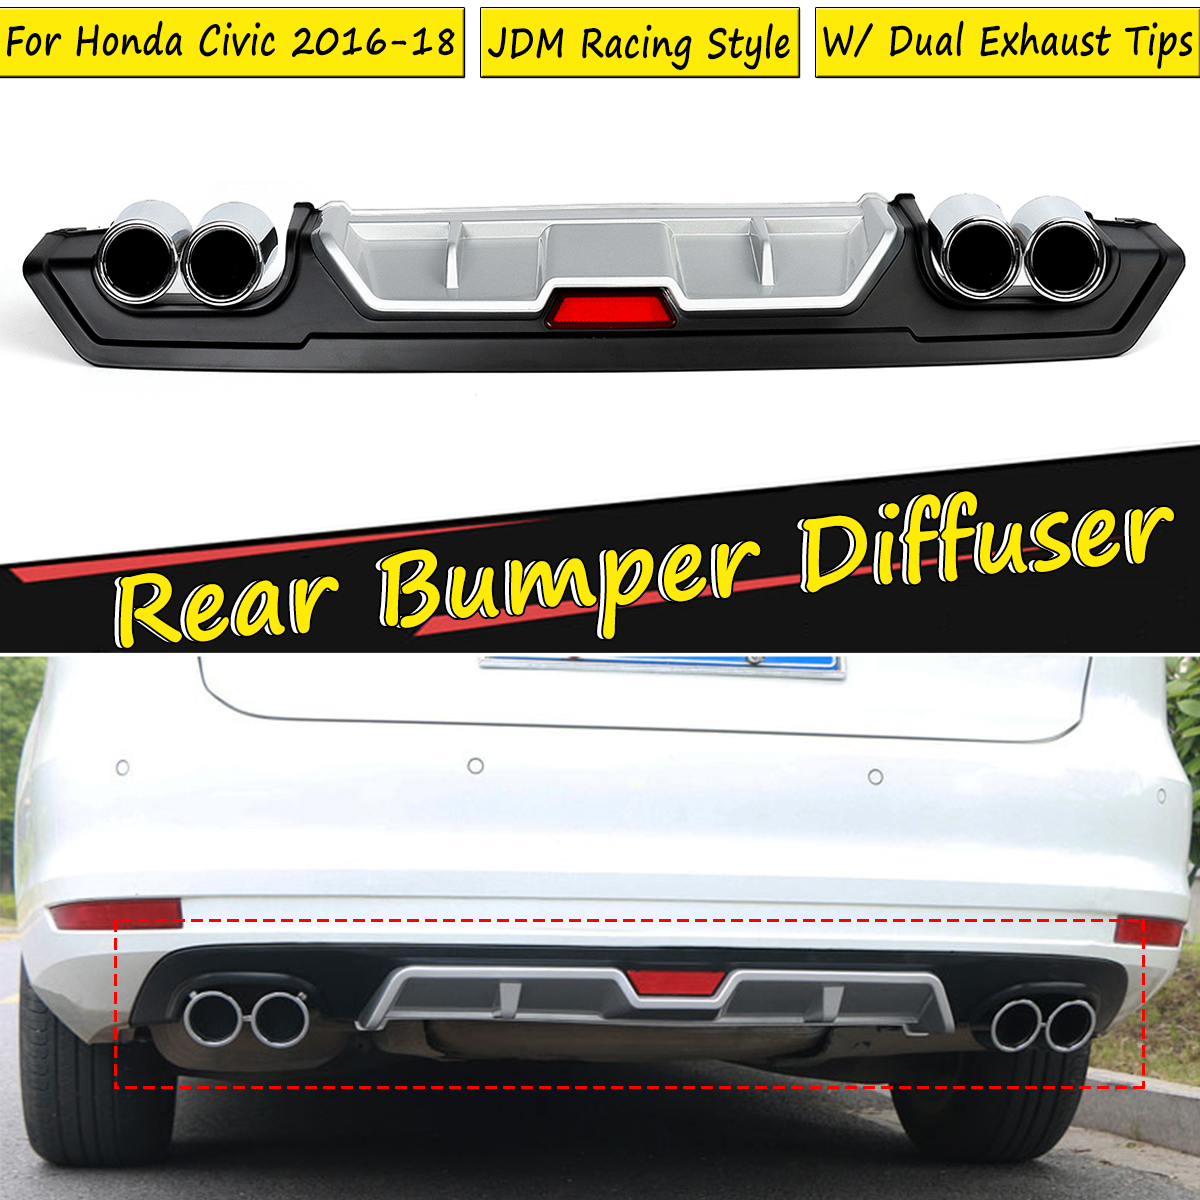 For Honda For Civic 2016 2017 2018 For JDM Rear Lower Bumper Diffuser Lip Cover with Dual ABS Special Outlet Pipe Exhaust DecorFor Honda For Civic 2016 2017 2018 For JDM Rear Lower Bumper Diffuser Lip Cover with Dual ABS Special Outlet Pipe Exhaust Decor